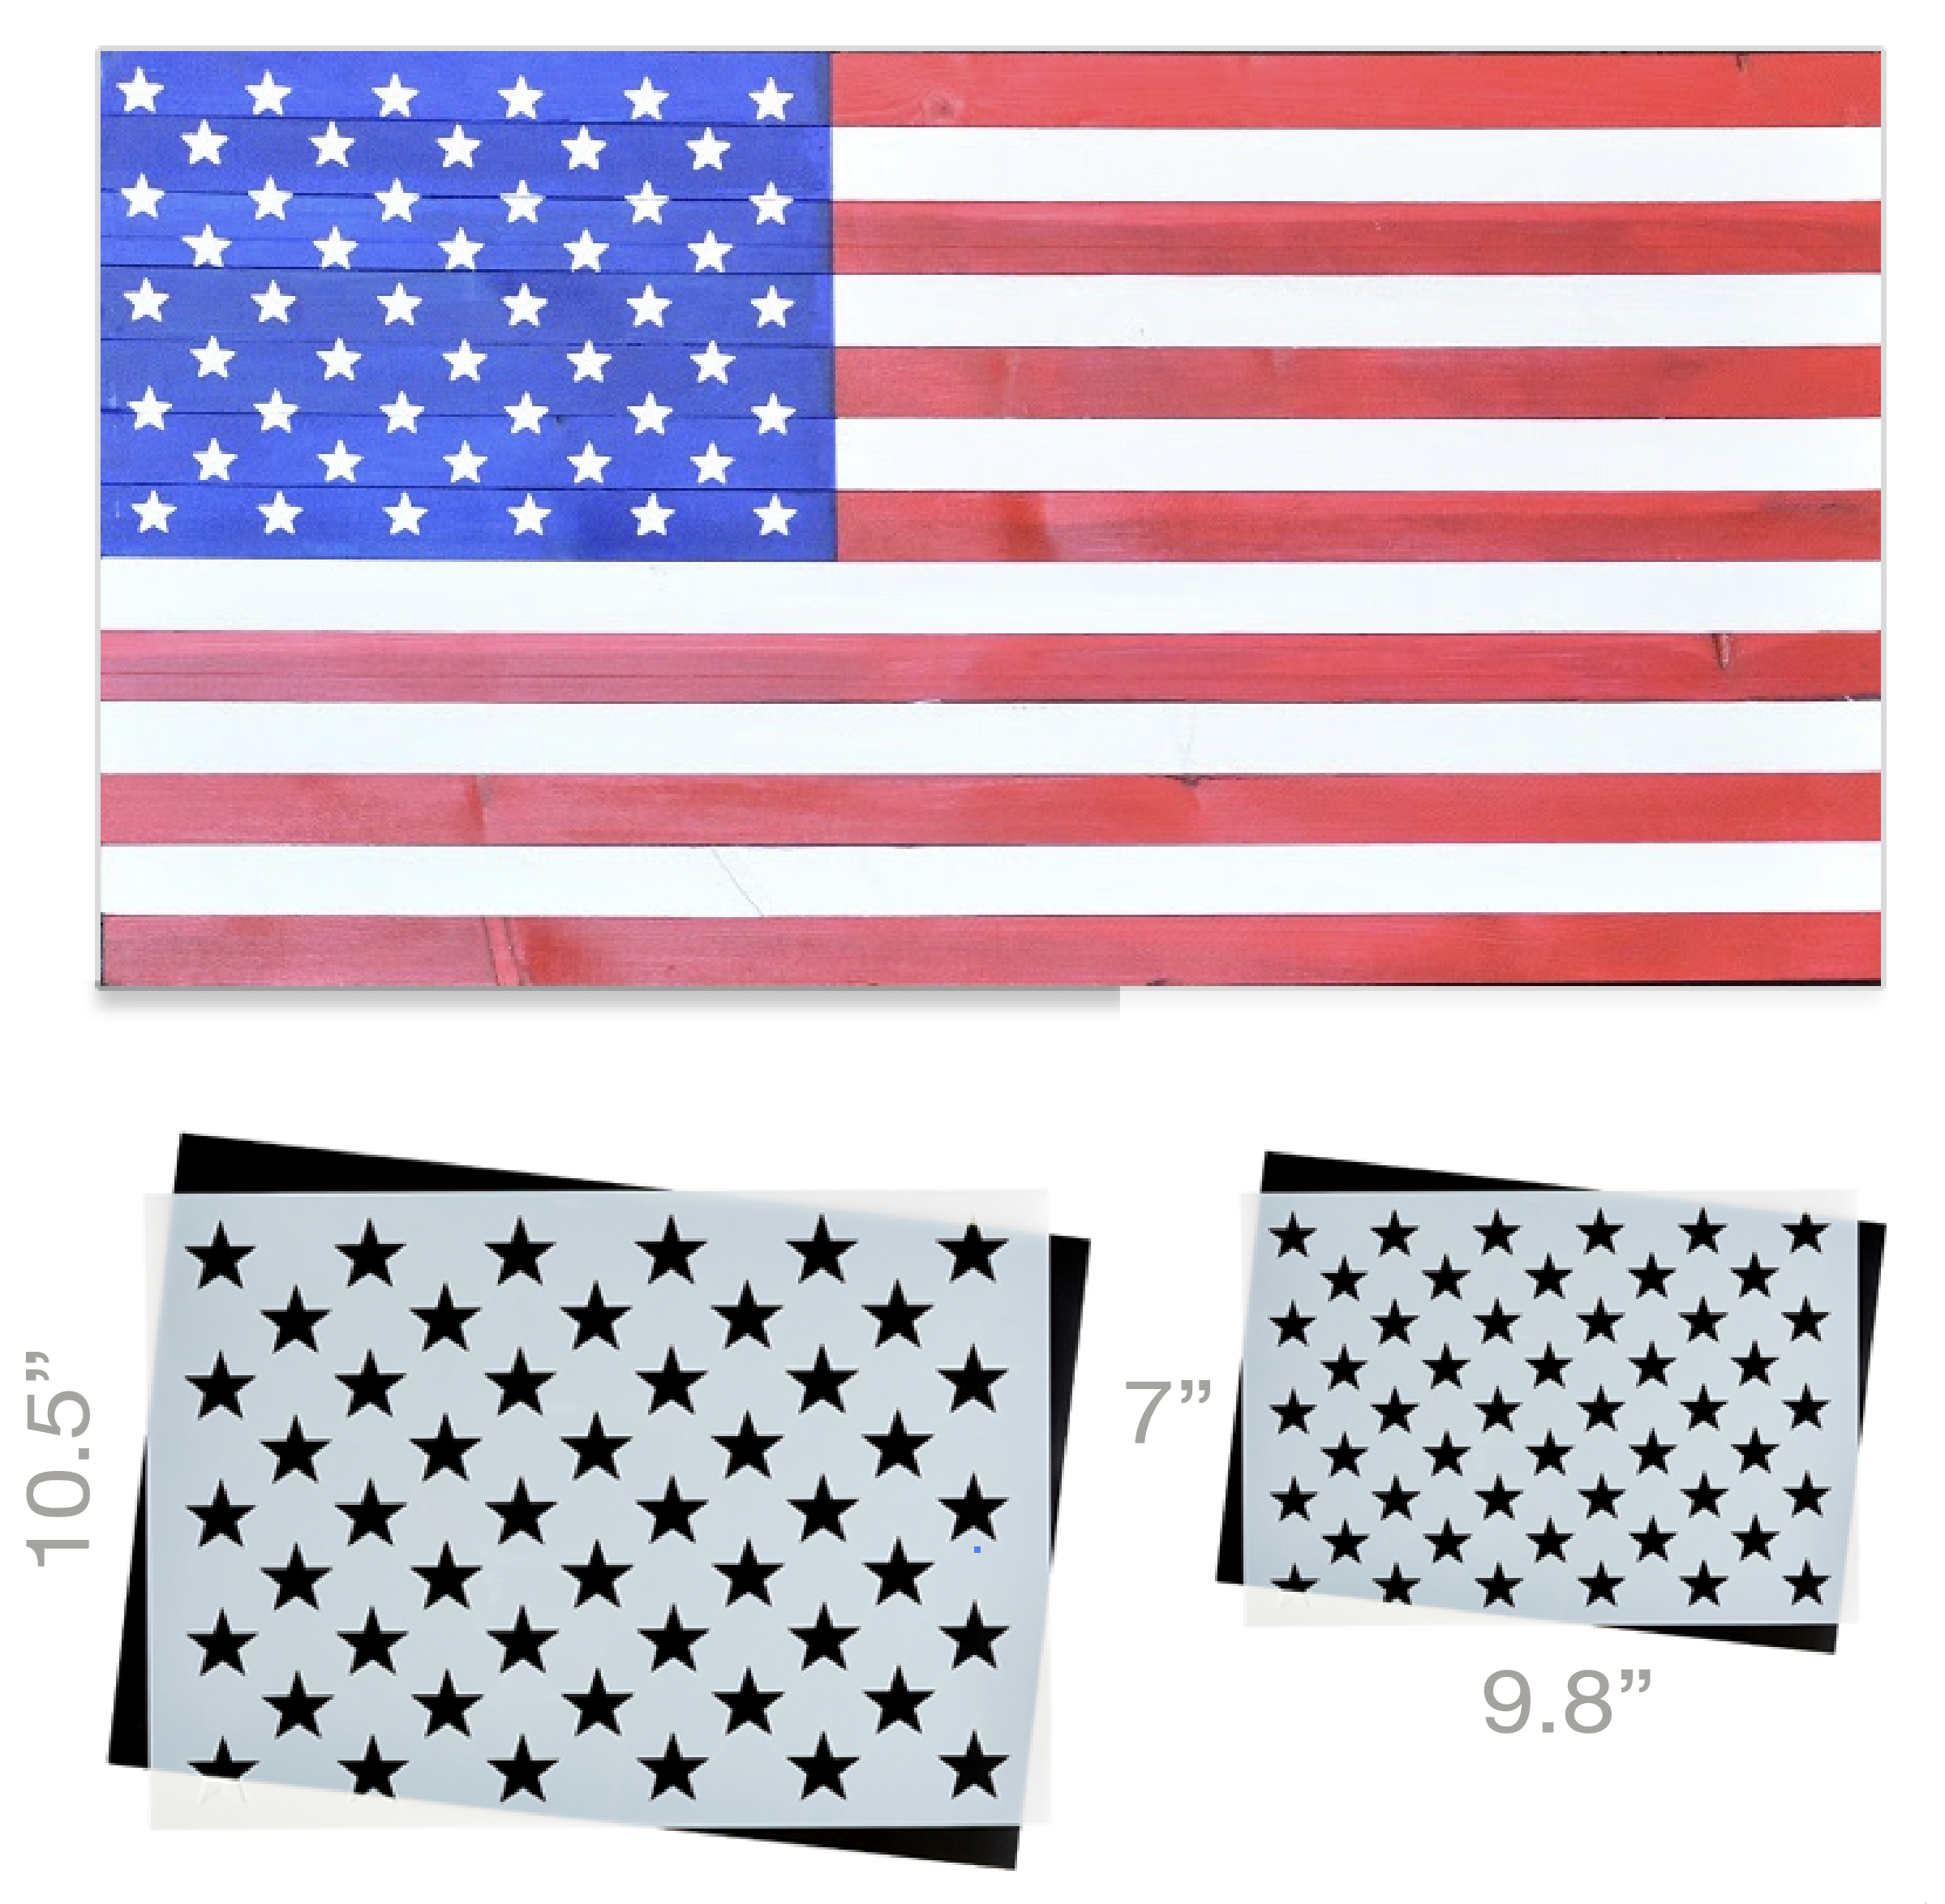 50 Star Stencil 2pk Ideal For Creating American Wood Flags Wood Flag Star Stencil Wood Flag Diy